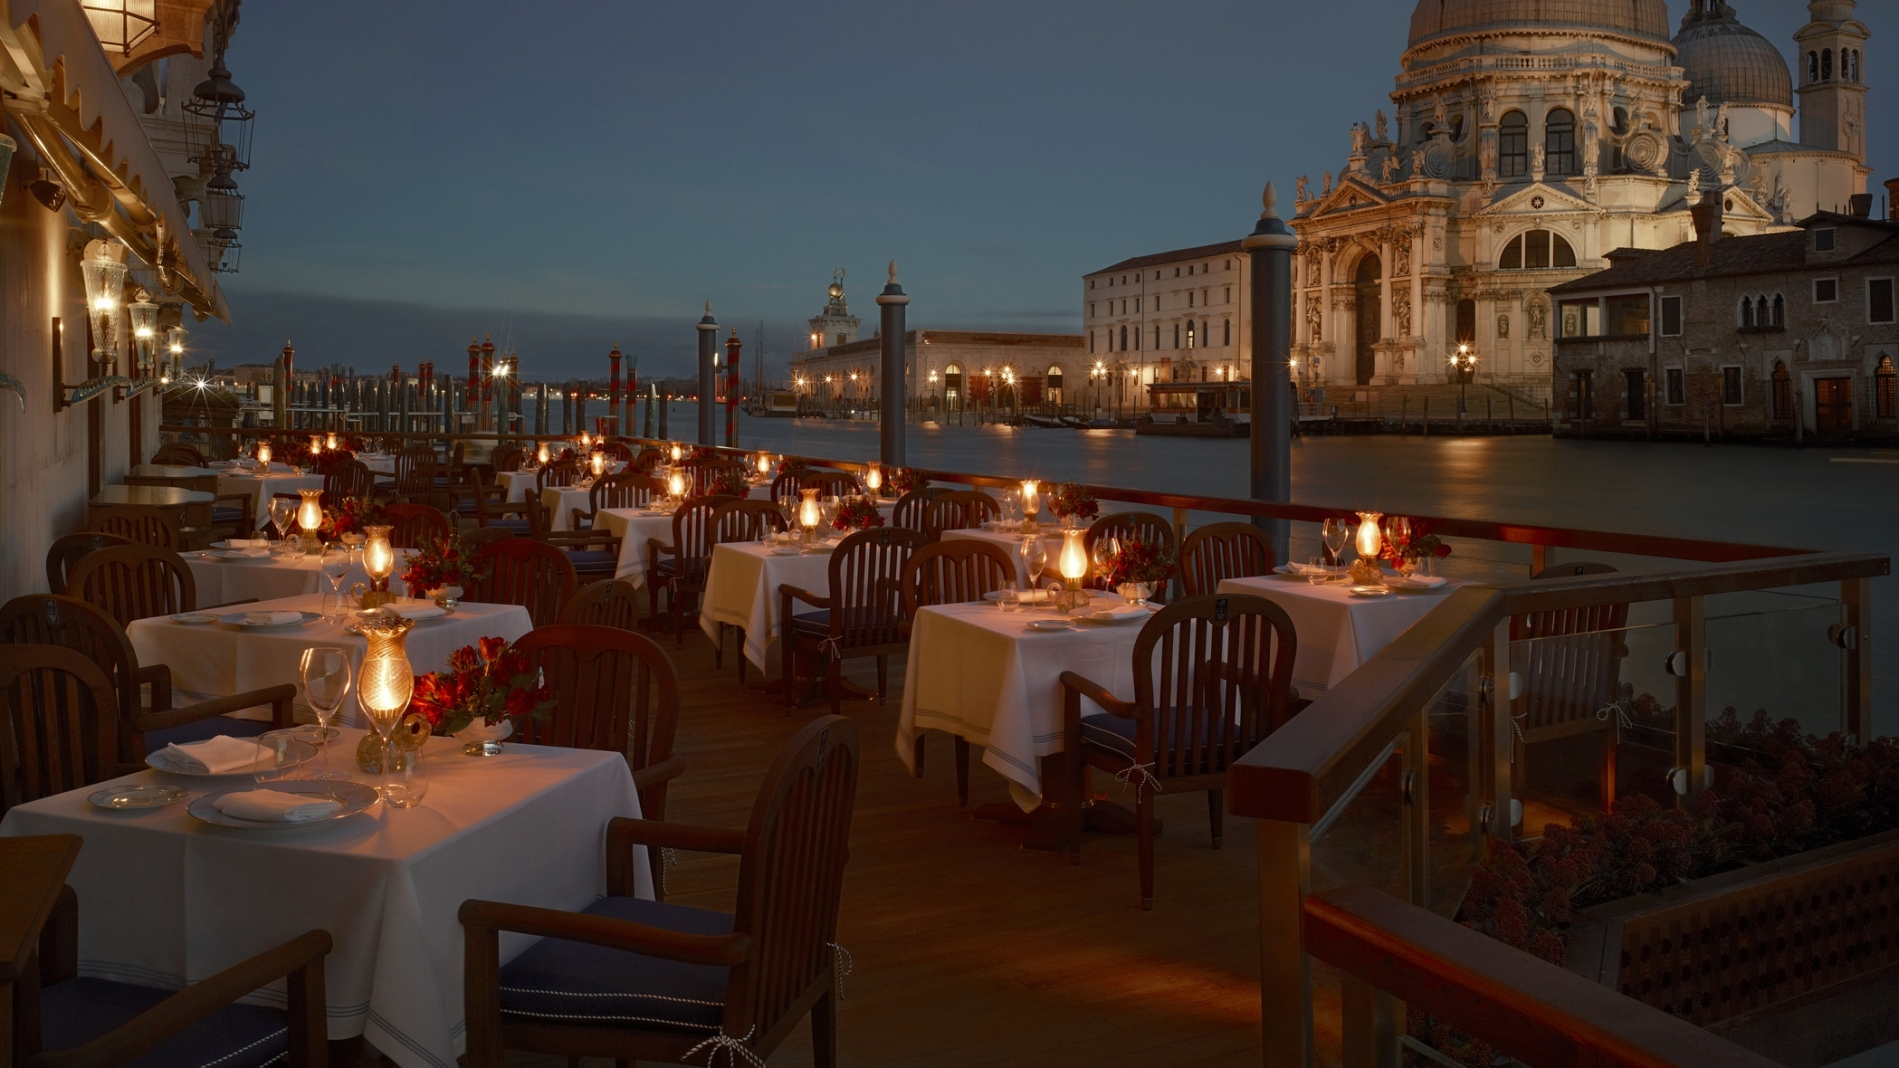 Club del doge restaurant fine dining in venice venice for The terrace menu